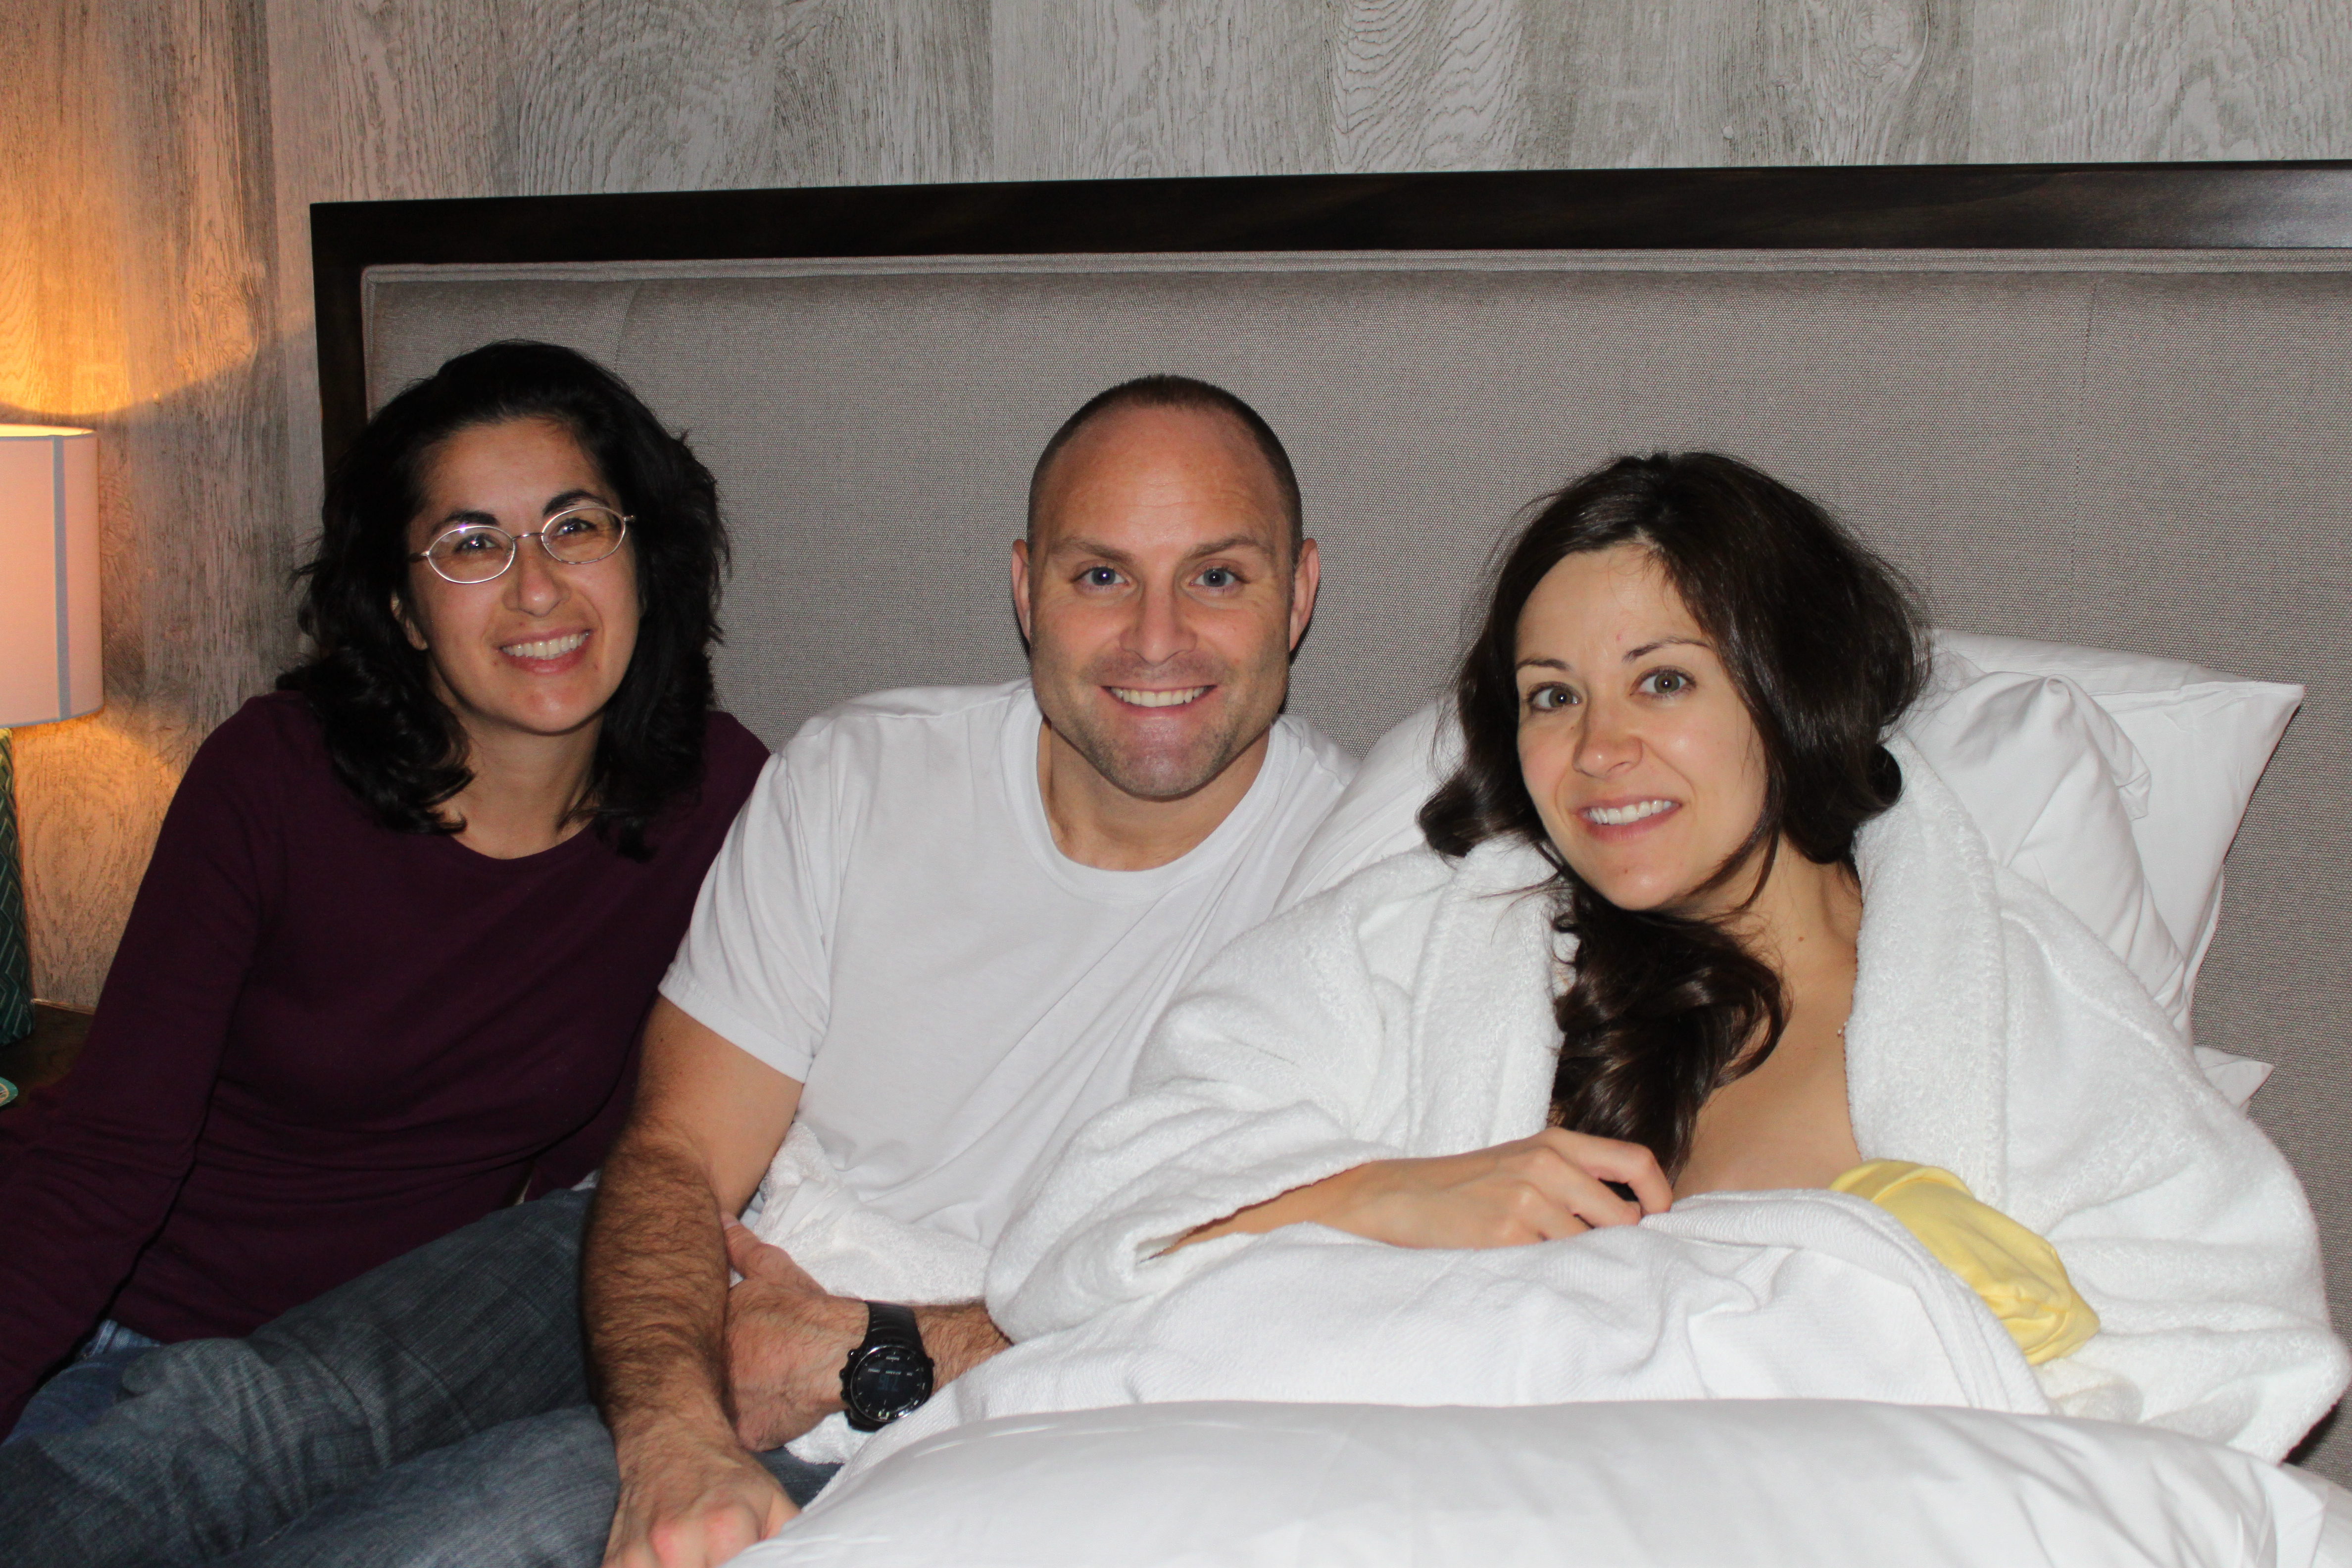 Doula Heidi Duncan with clients Randall & Amanda after their beautiful birth at Baby+Co Birth Center in Nashville